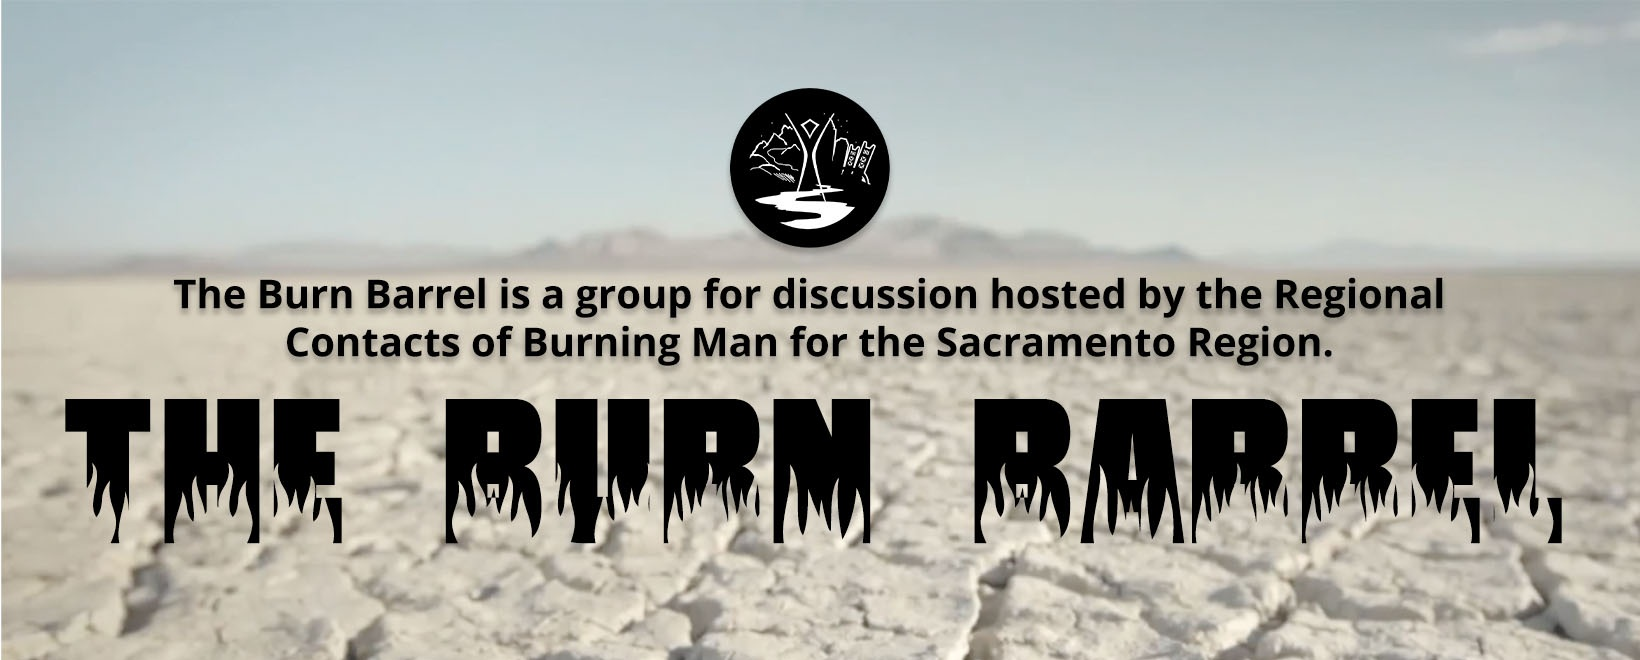 Anyone can join The Burn Barrel by  clicking this link .